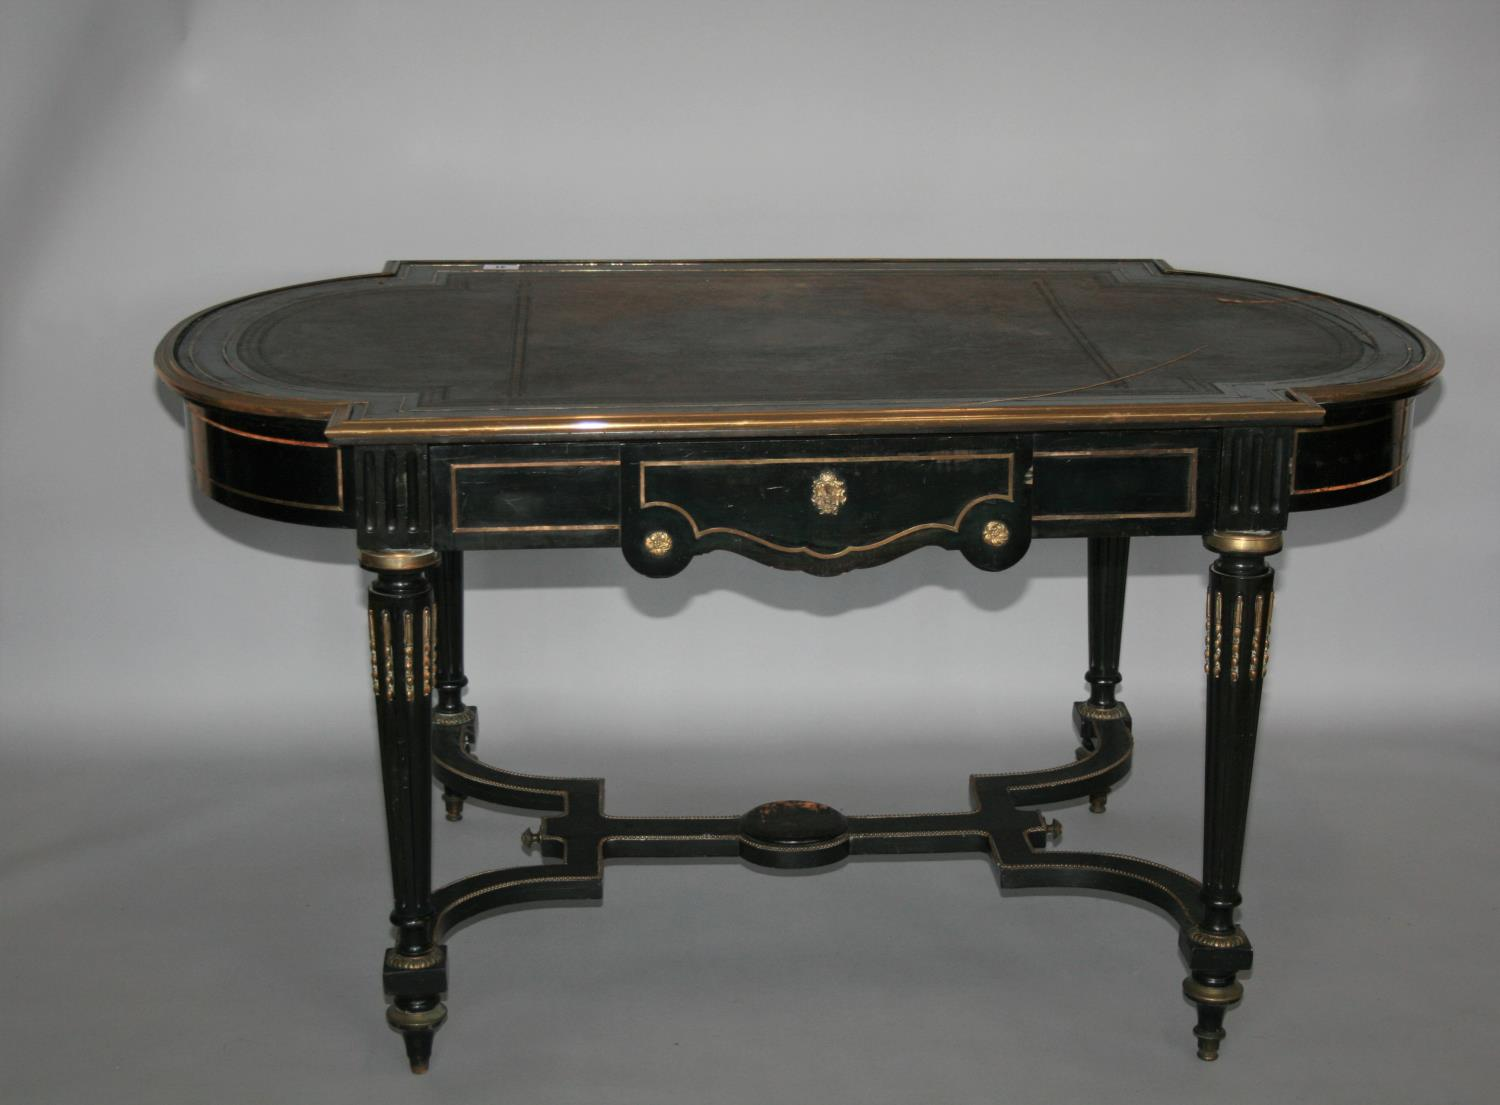 19th Century ebonised and brass mounted centre table with frieze drawer as found 152 W x 76 H x 90